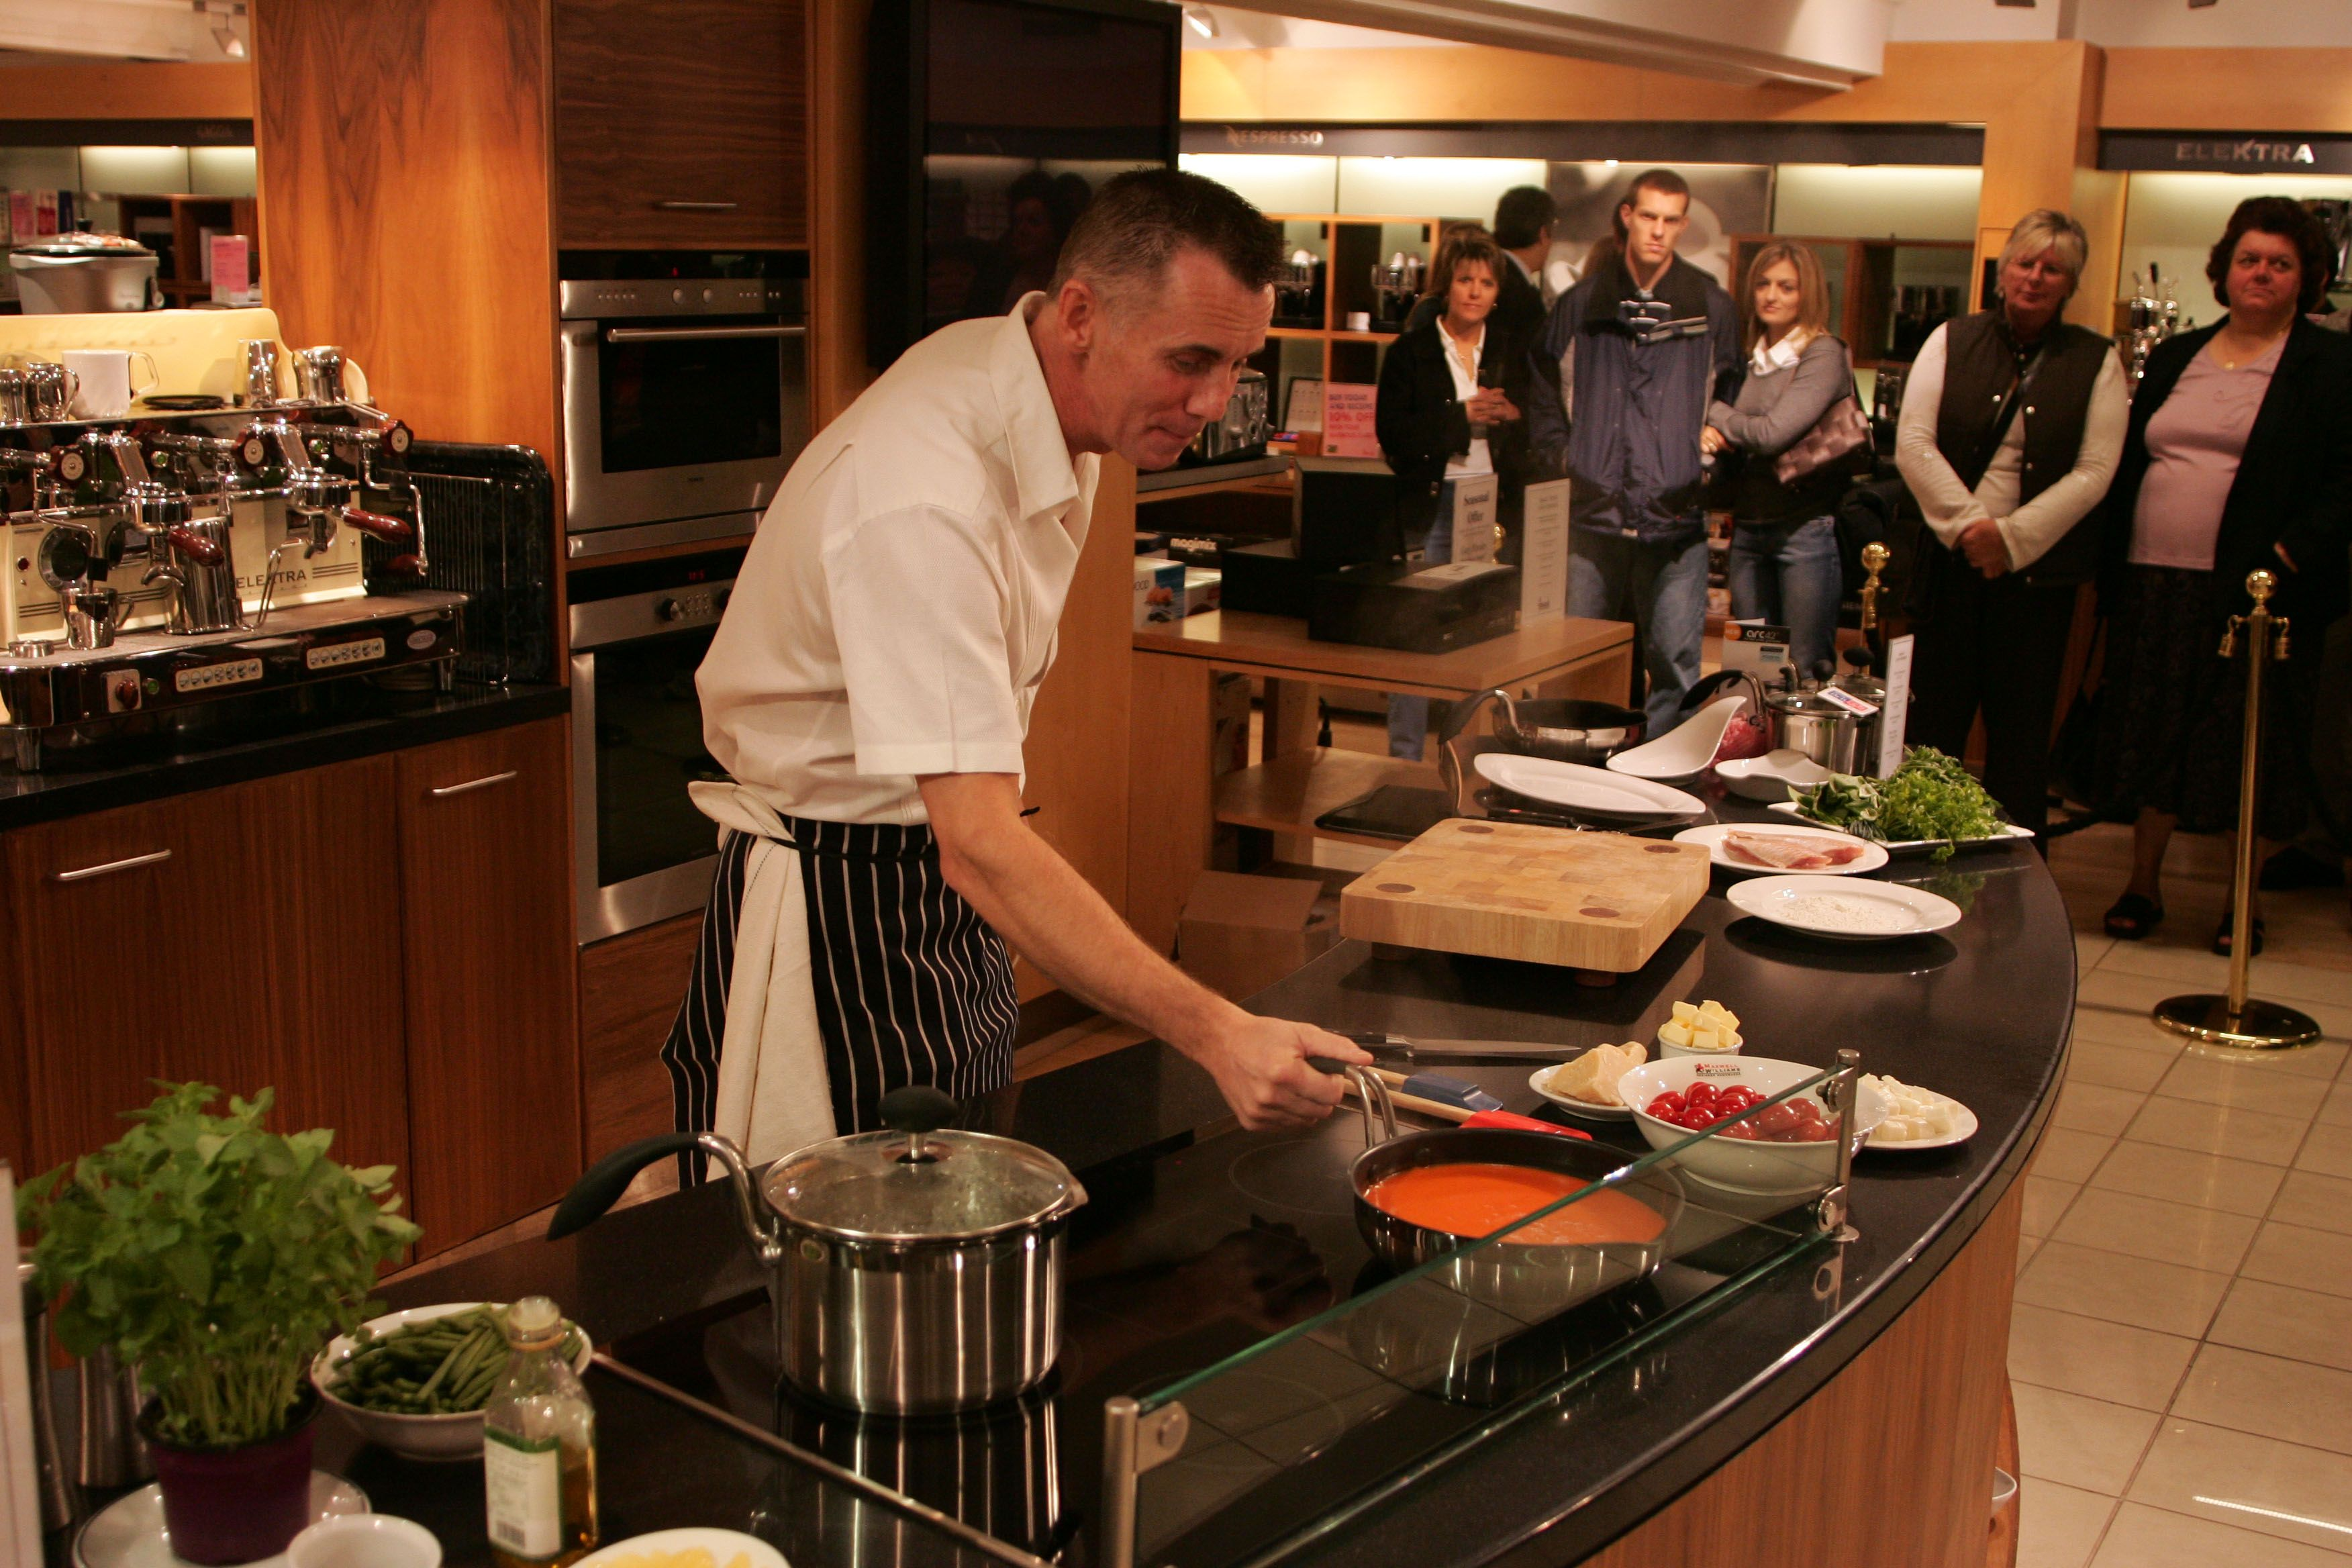 Gary Rhodes Demonstrating Eazigrip At Harrods With Images Table Settings Cooking Harrods